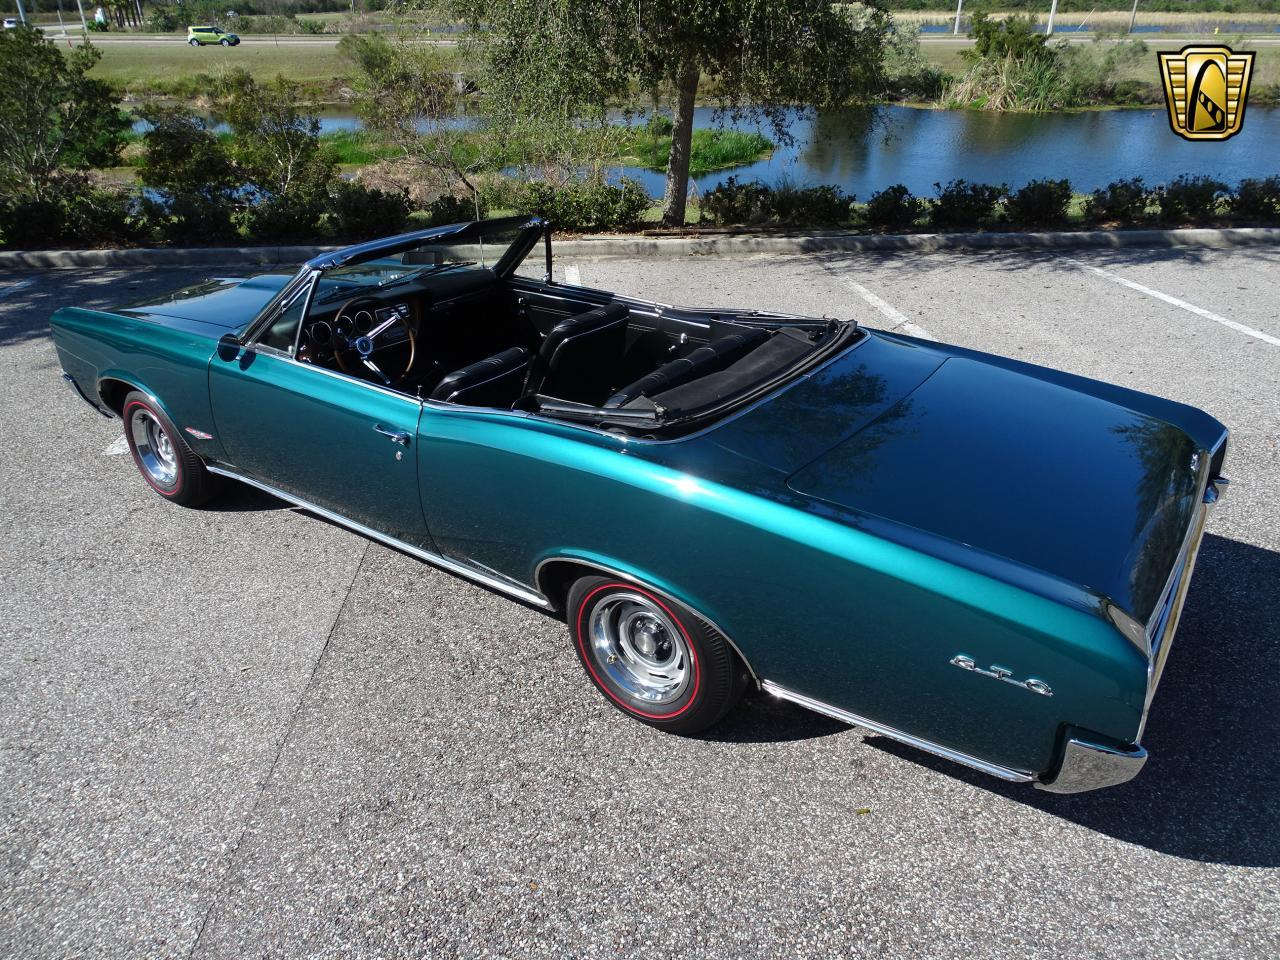 Large Picture of 1966 Pontiac GTO located in Ruskin Florida - $59,000.00 - MF43